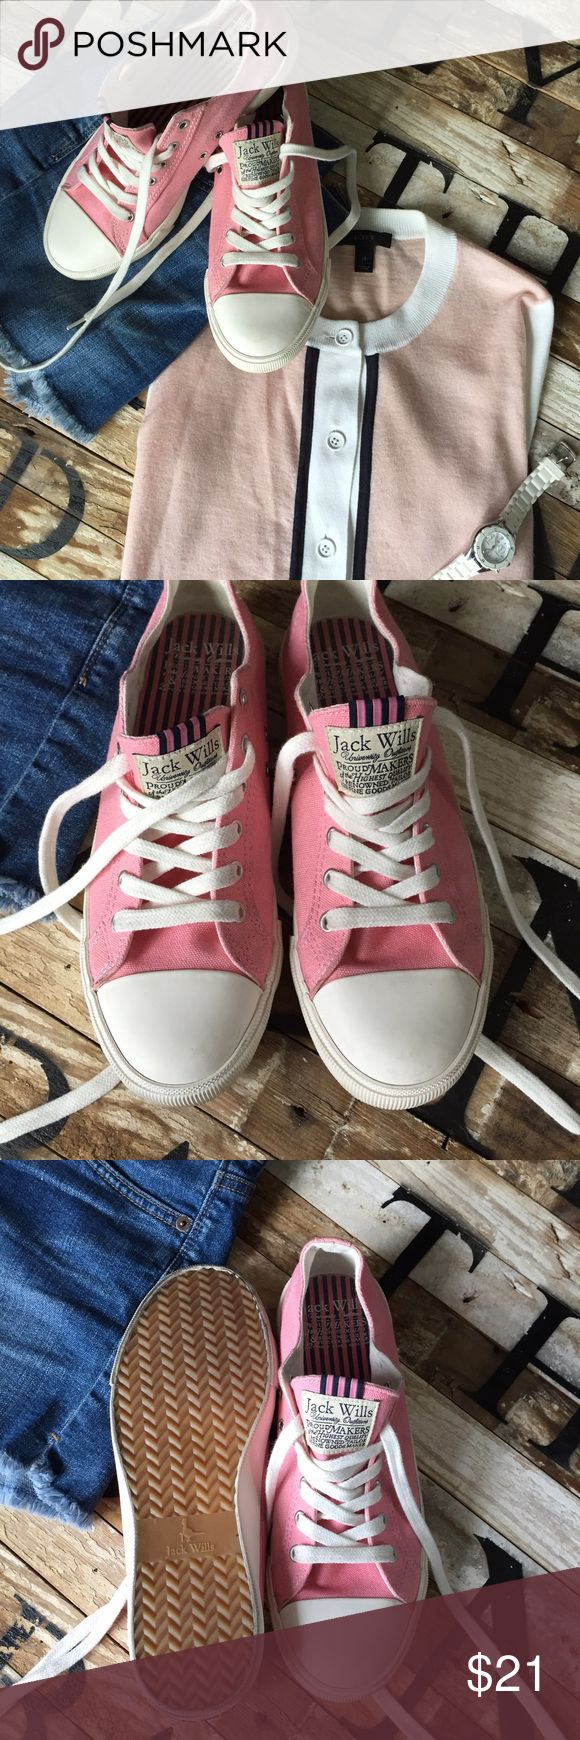 "Jack Wills Converse style Sneaker Darling pink 💕 ""Petal Shelton Plimsolls"" from the Jack Wills store in Cape Cod. Only WORN ONCE! Identical to converse with a preppy flare of a pink and navy grosgrain striped ribbon on tongue. Labeled size 6 (British size) which is a women's size 9. Jack Wills Shoes Sneakers"